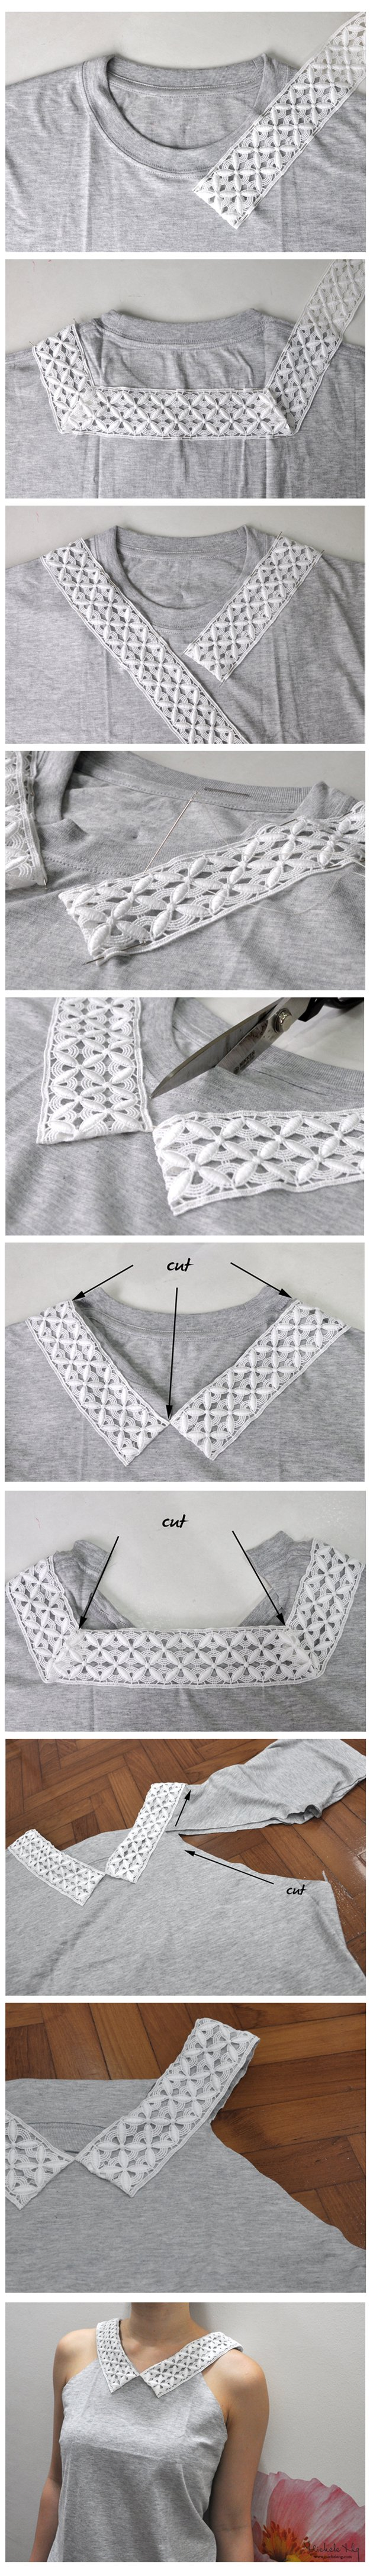 Easy Top DIY Tutorial from T Shirt | diyready.com/diy-clothes-sewing-blouses-tutorial/